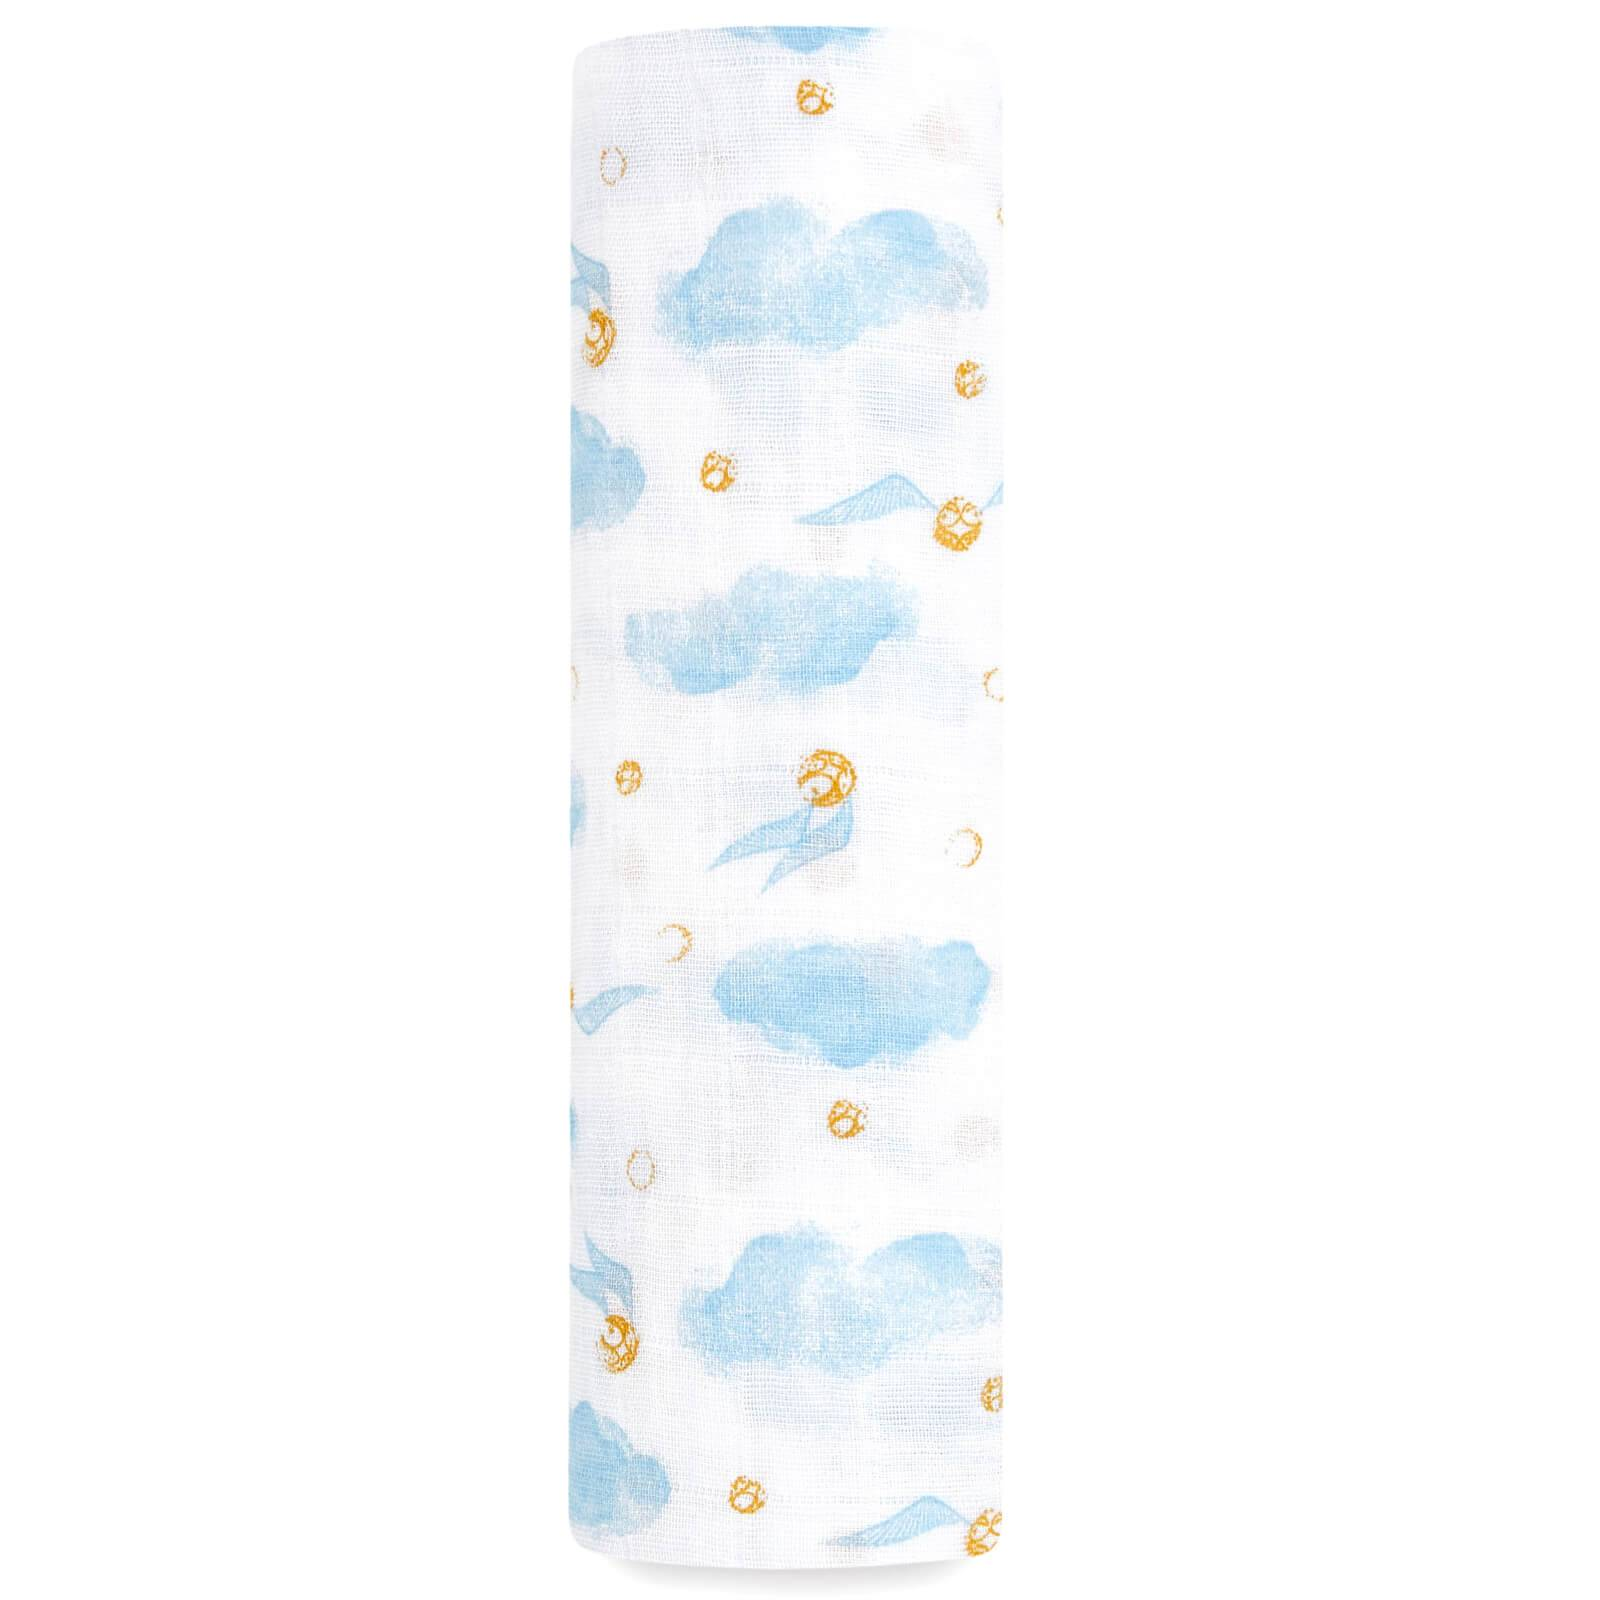 aden + anais Harry Potter™ Limited Edition Snitch Swaddle